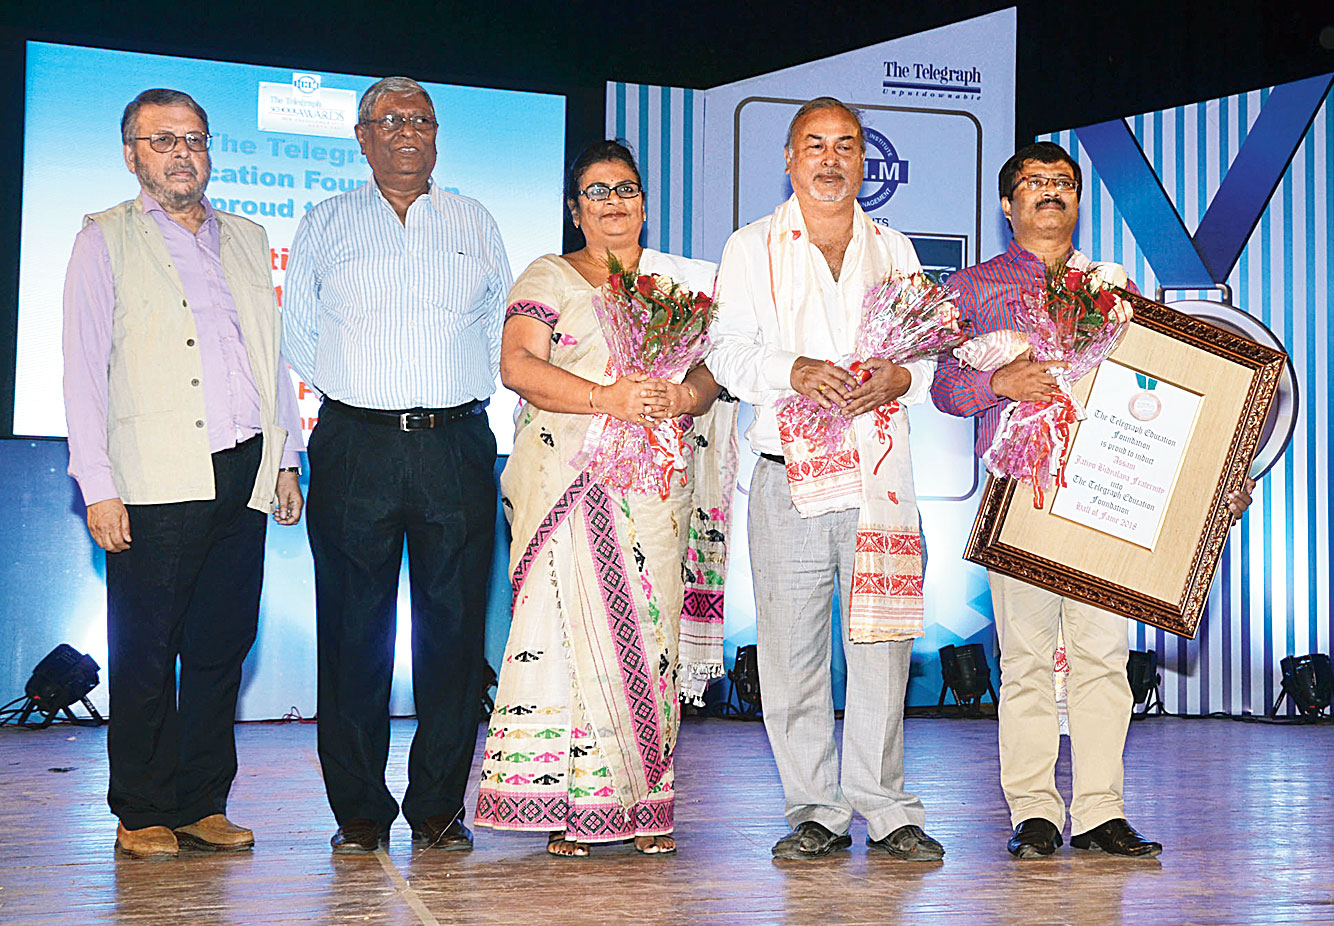 (From left) Telegraph Education Foundation chairman Amitabha Dutta of ABP Pvt Ltd and The Telegraph School Awards chairman of the awards and scholarships committee Kashi Nath Hazarika with Minakshi Kakoti, Sashindra Kakoti and Ghanashyam Medhi of the Assam Jatiya Bidyalay fraternity.